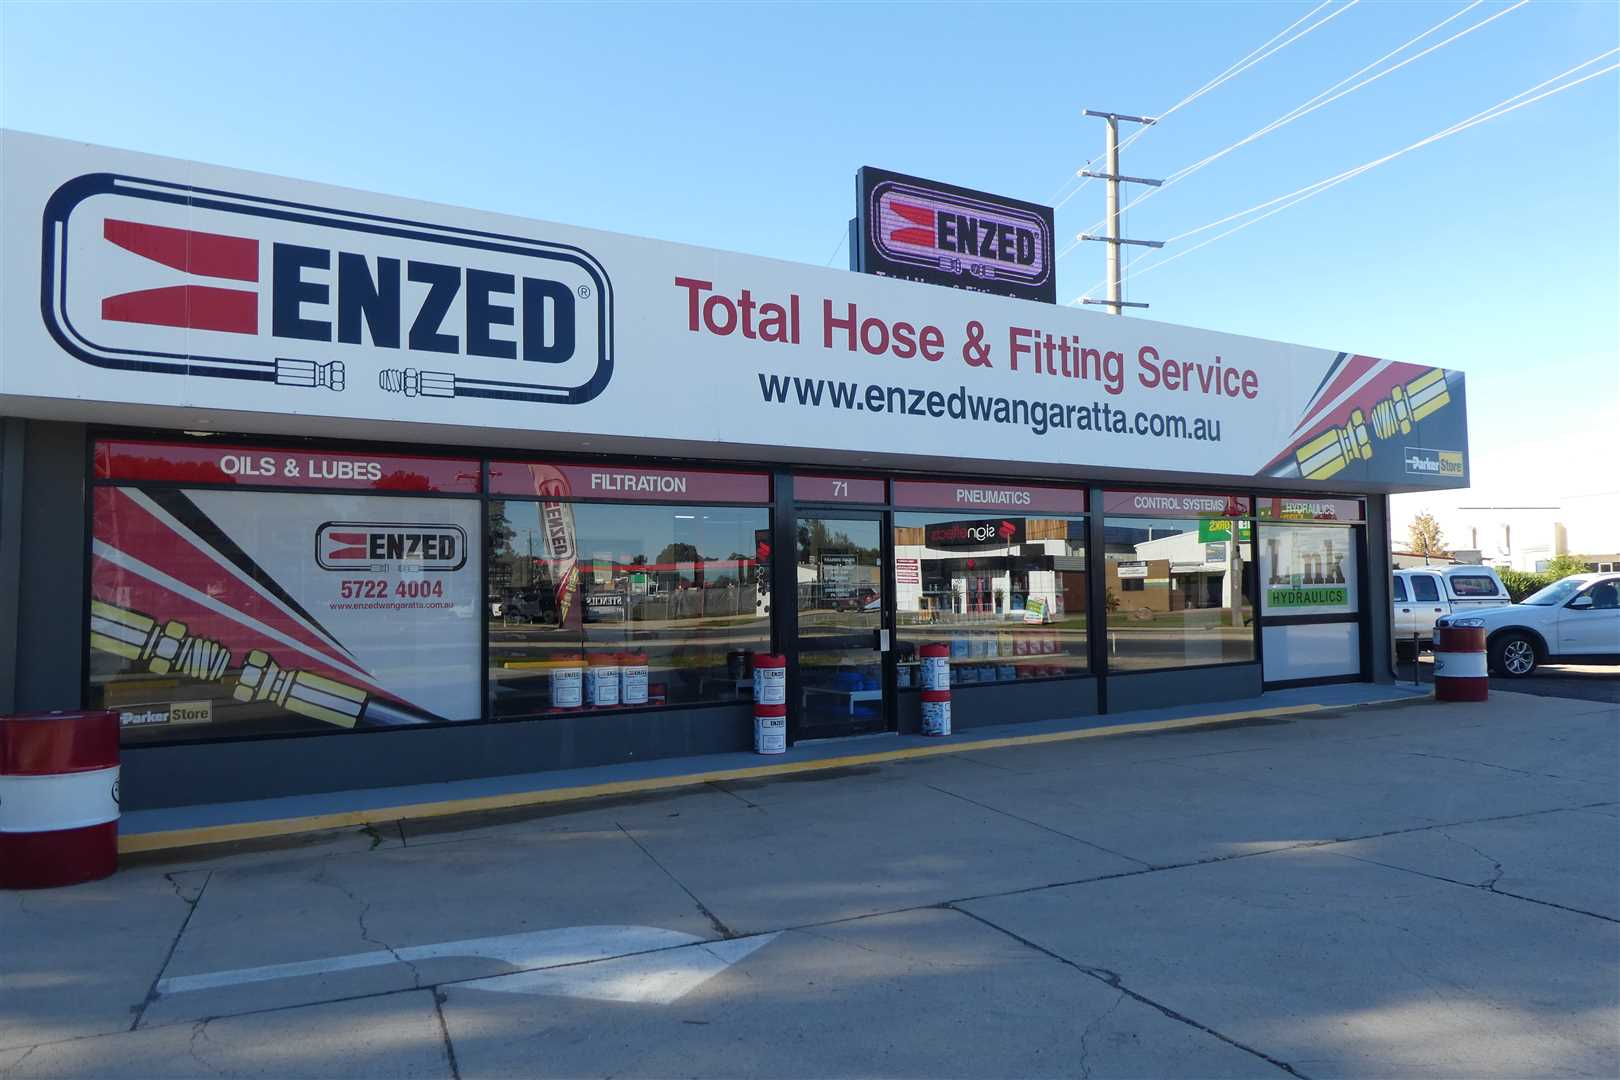 Hydraulic industrial hose fitter and installer franchise